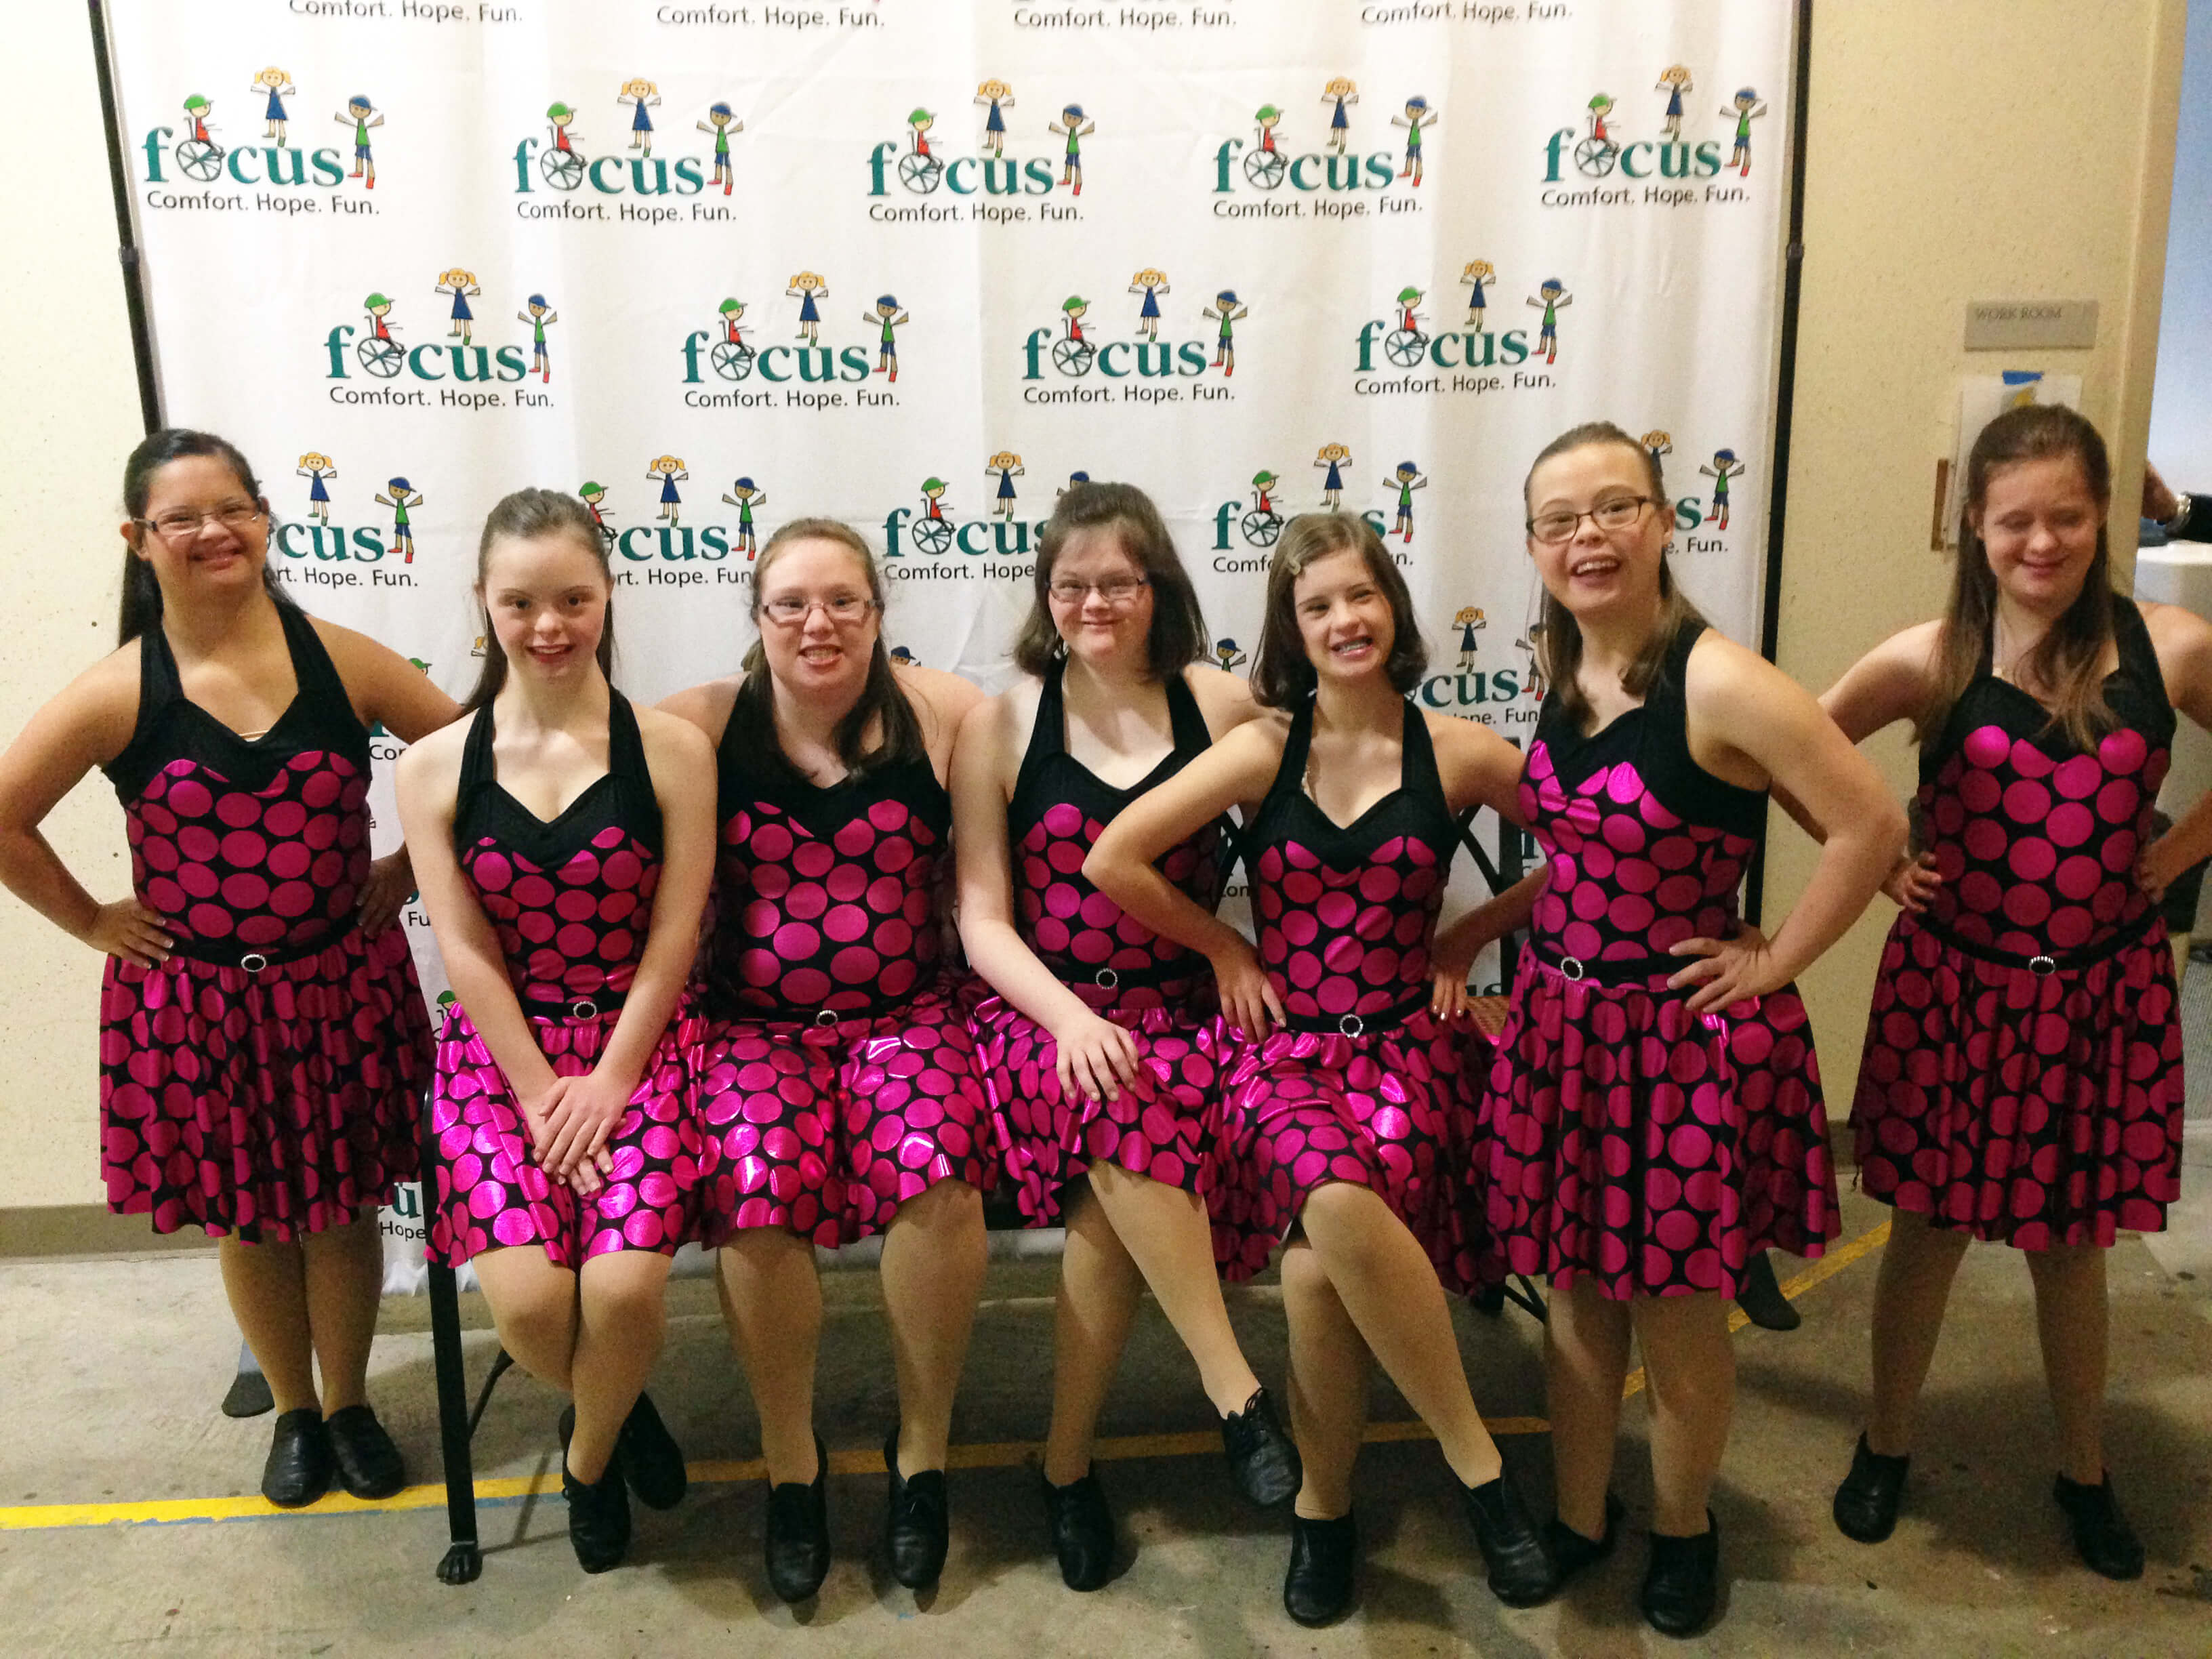 Once Upon A Holiday Pre-Show Features Foster-Schmidt Dance Company